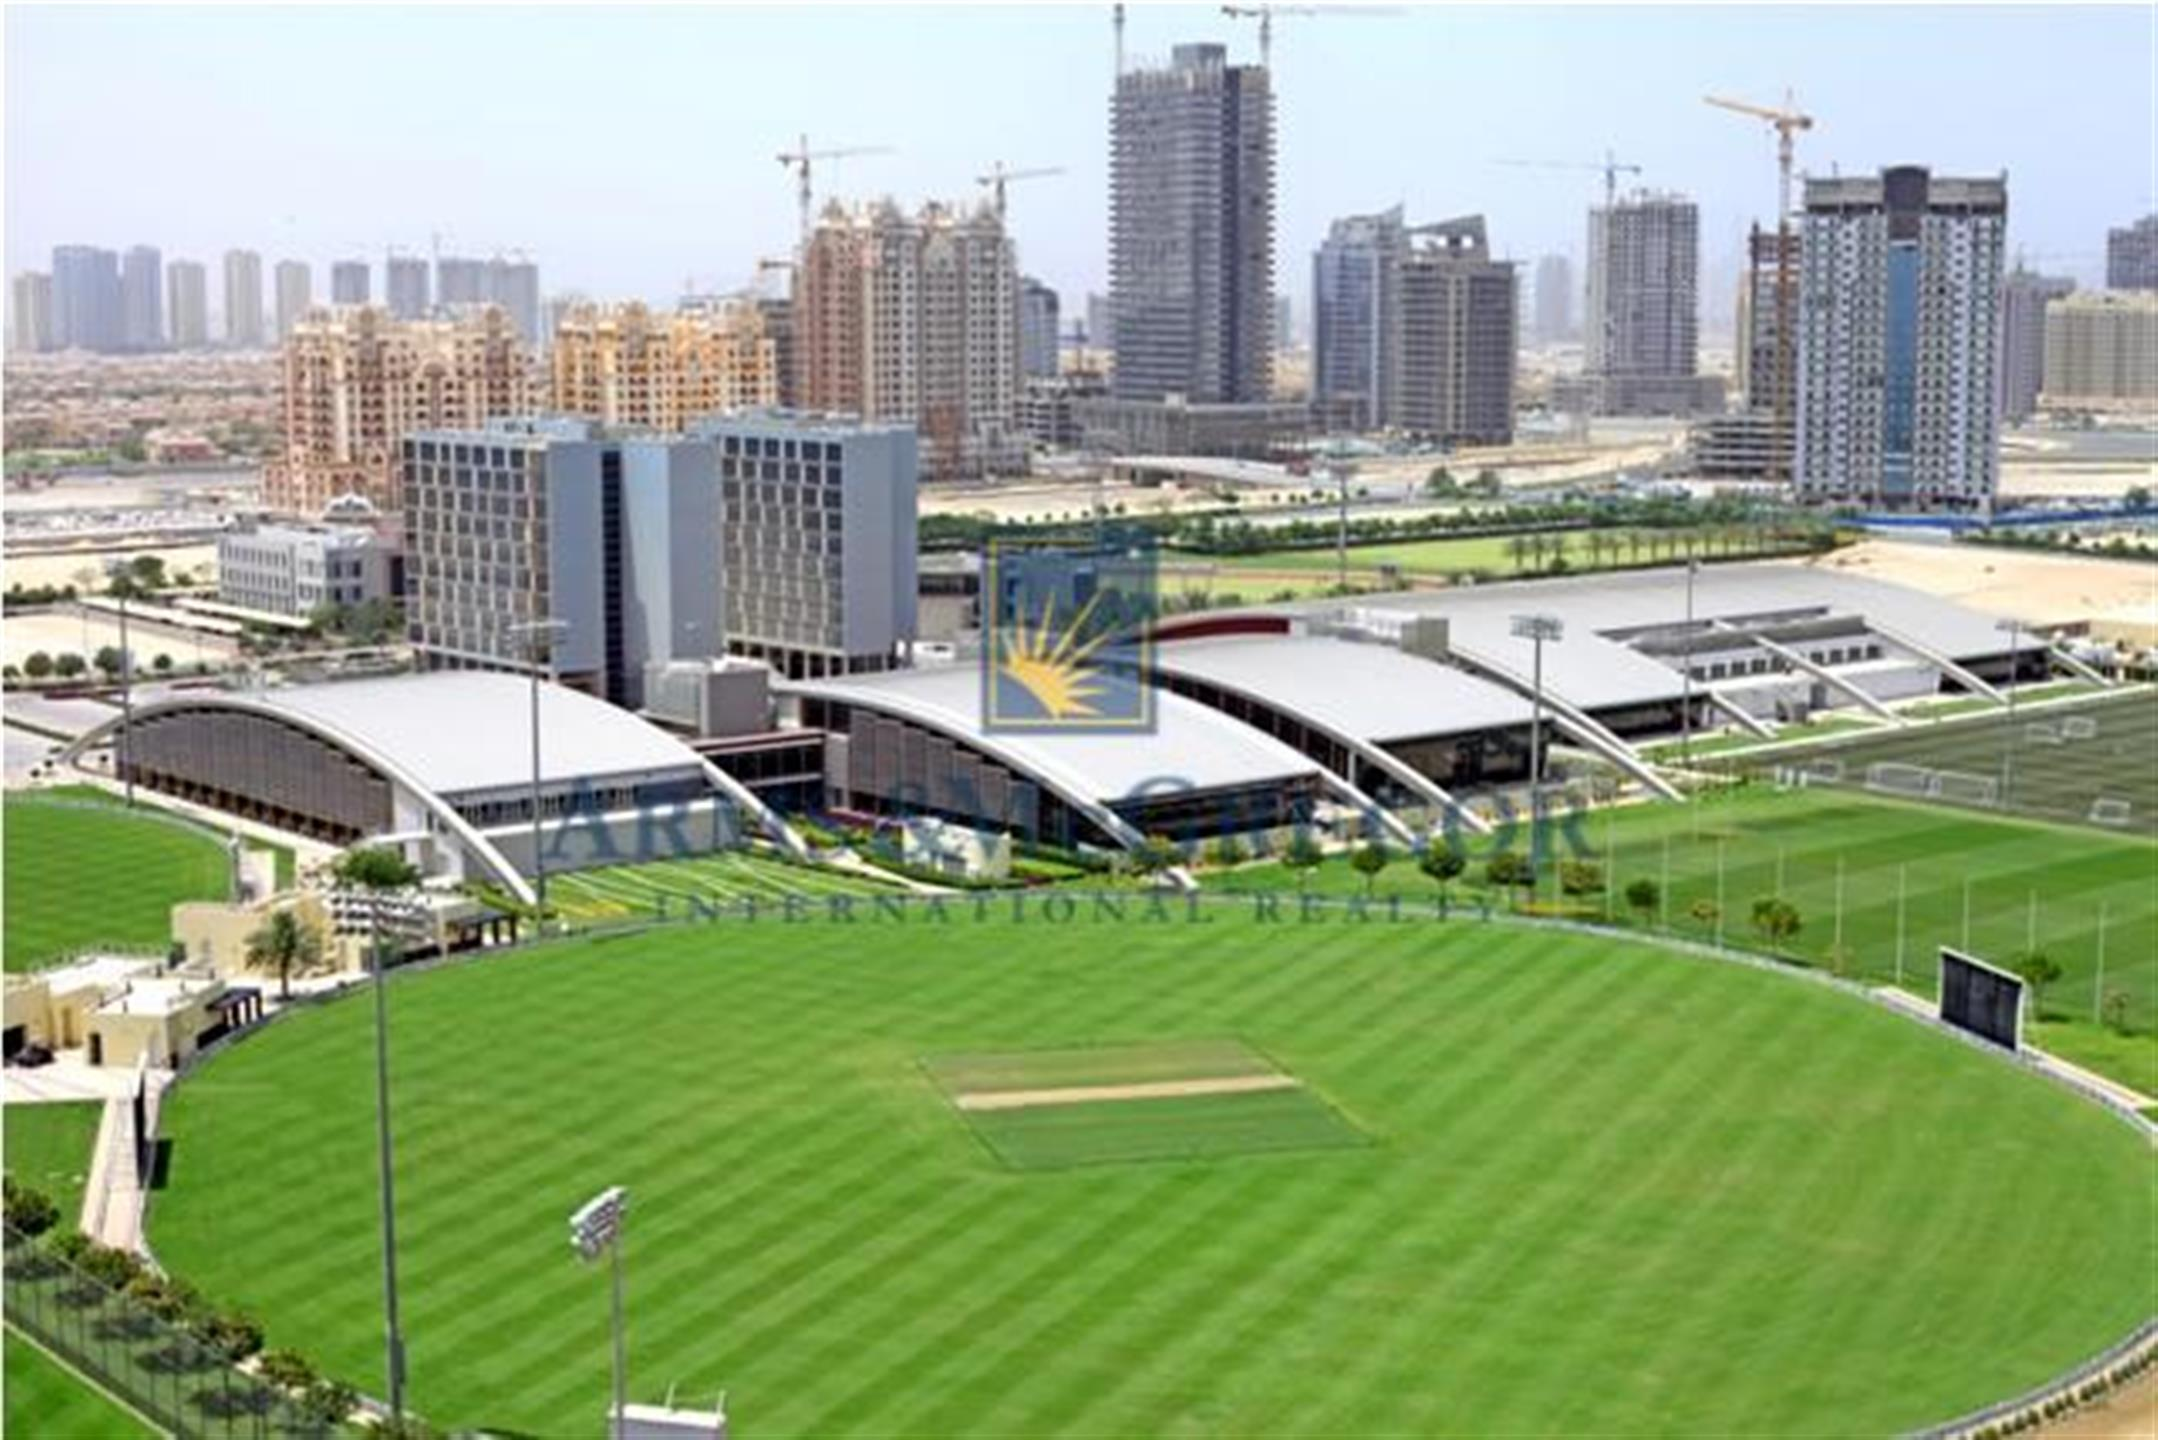 Property - Apartment for sale in Dubailand- Dubai - Elite Sports Residence 9